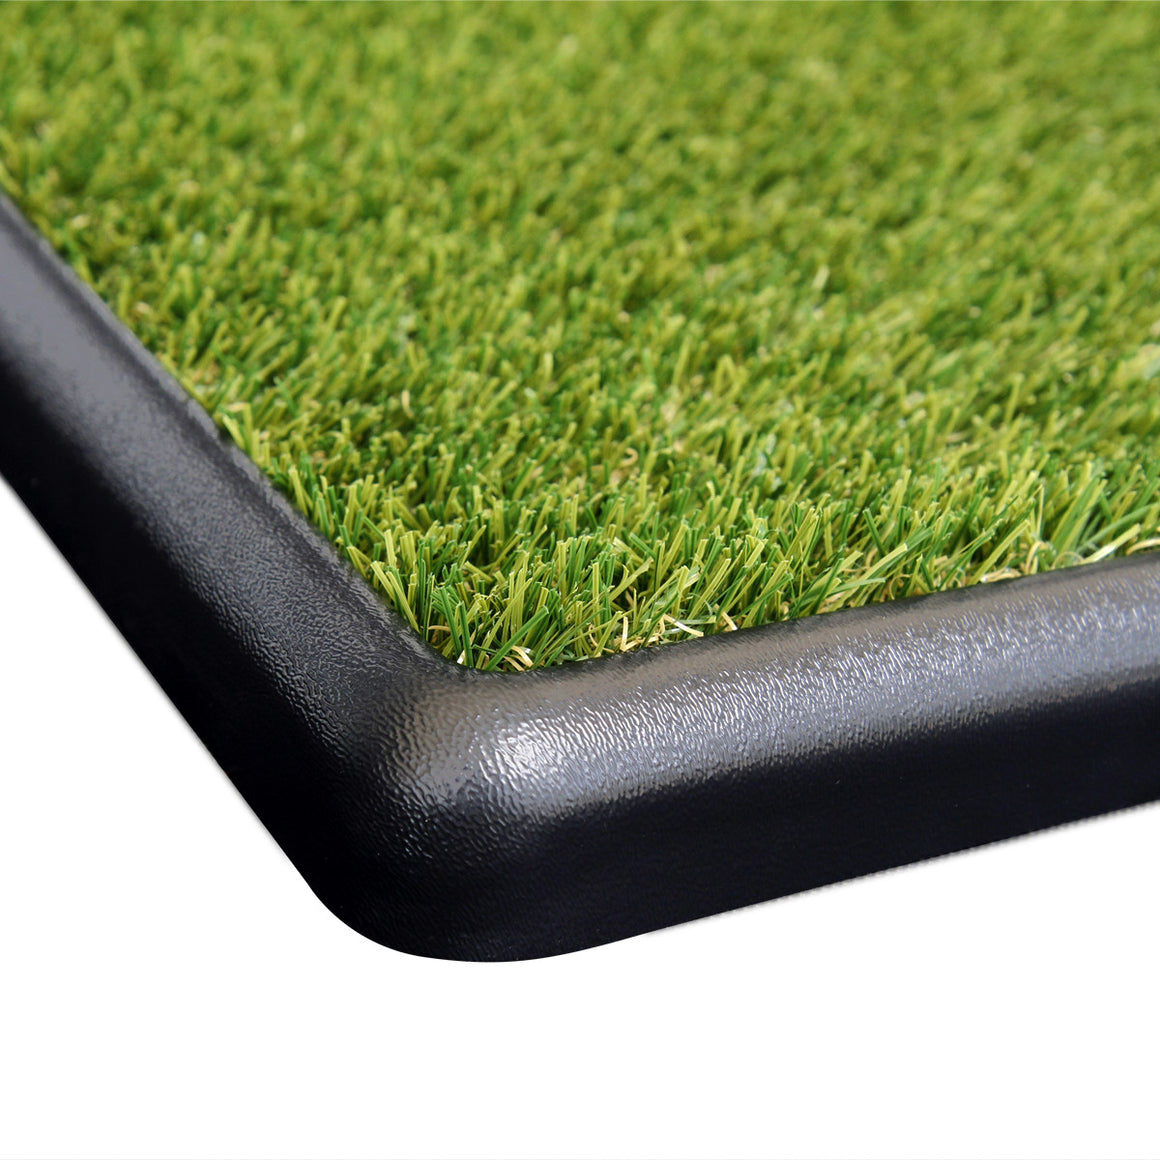 Low profile tray and flush fit grass for pets